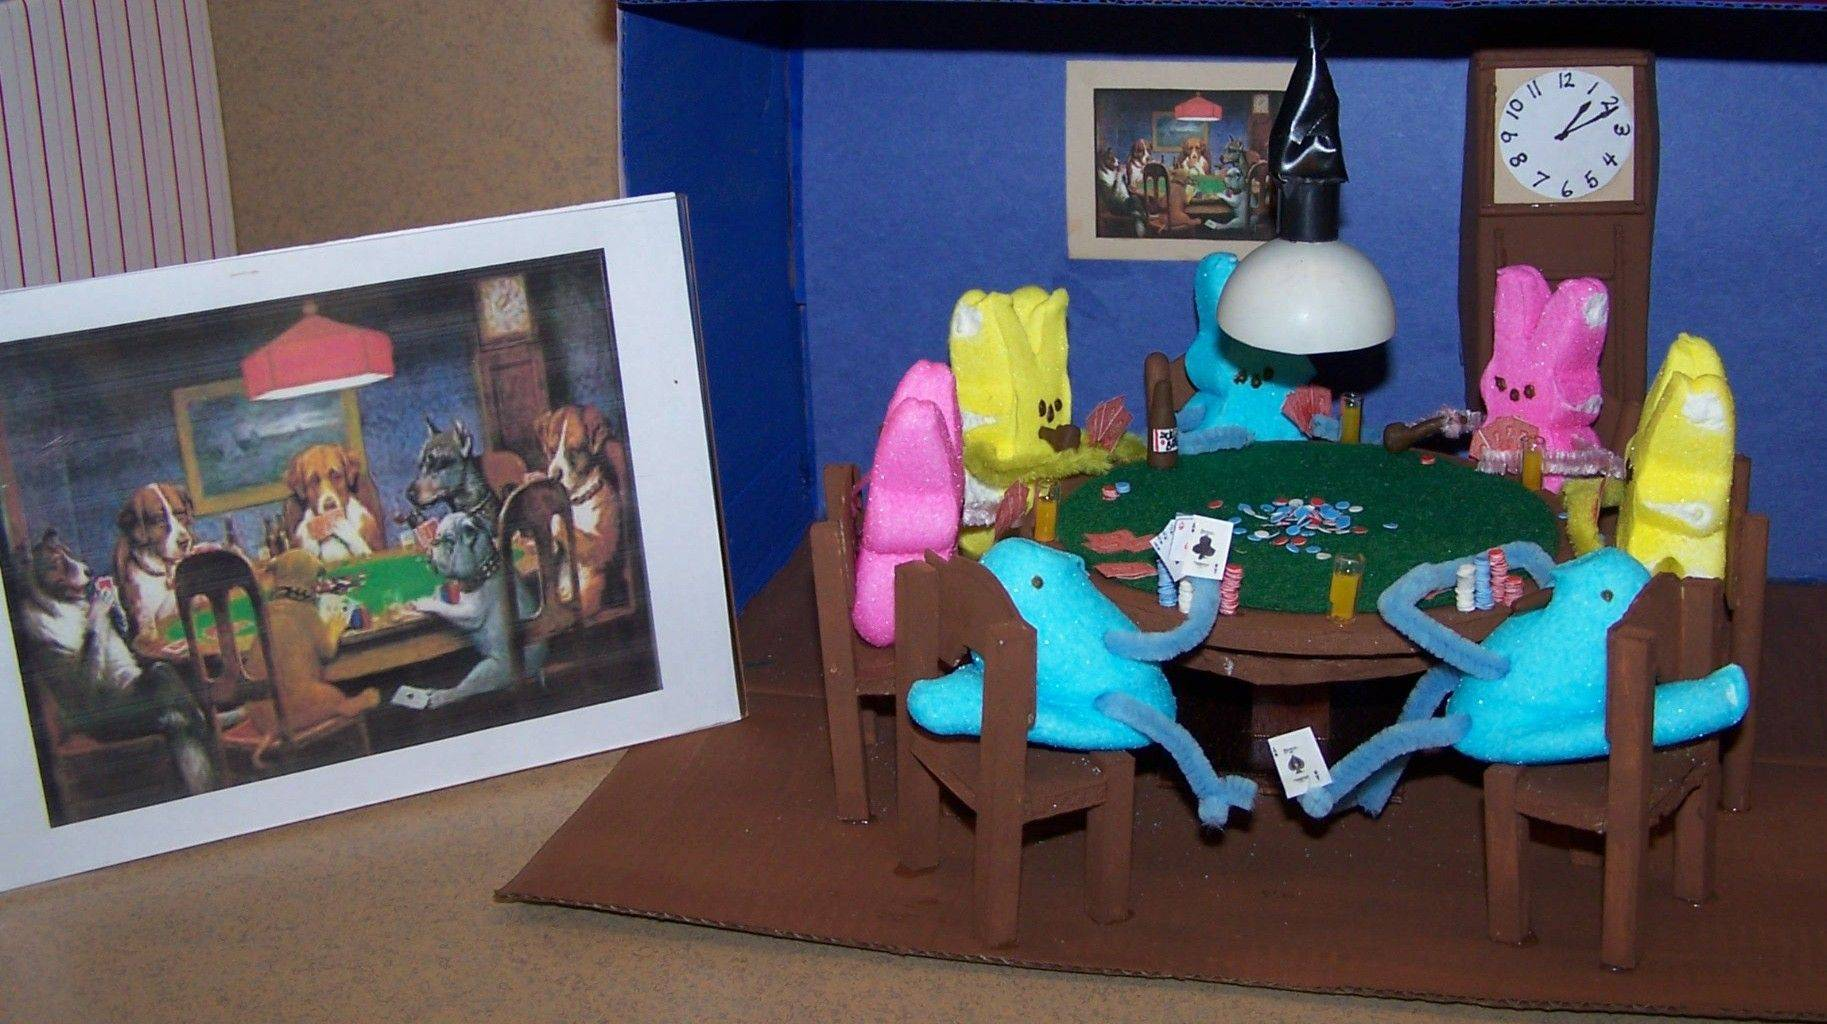 A card game is featured in a Peeps diorama created by Holmstad residents in Batavia.